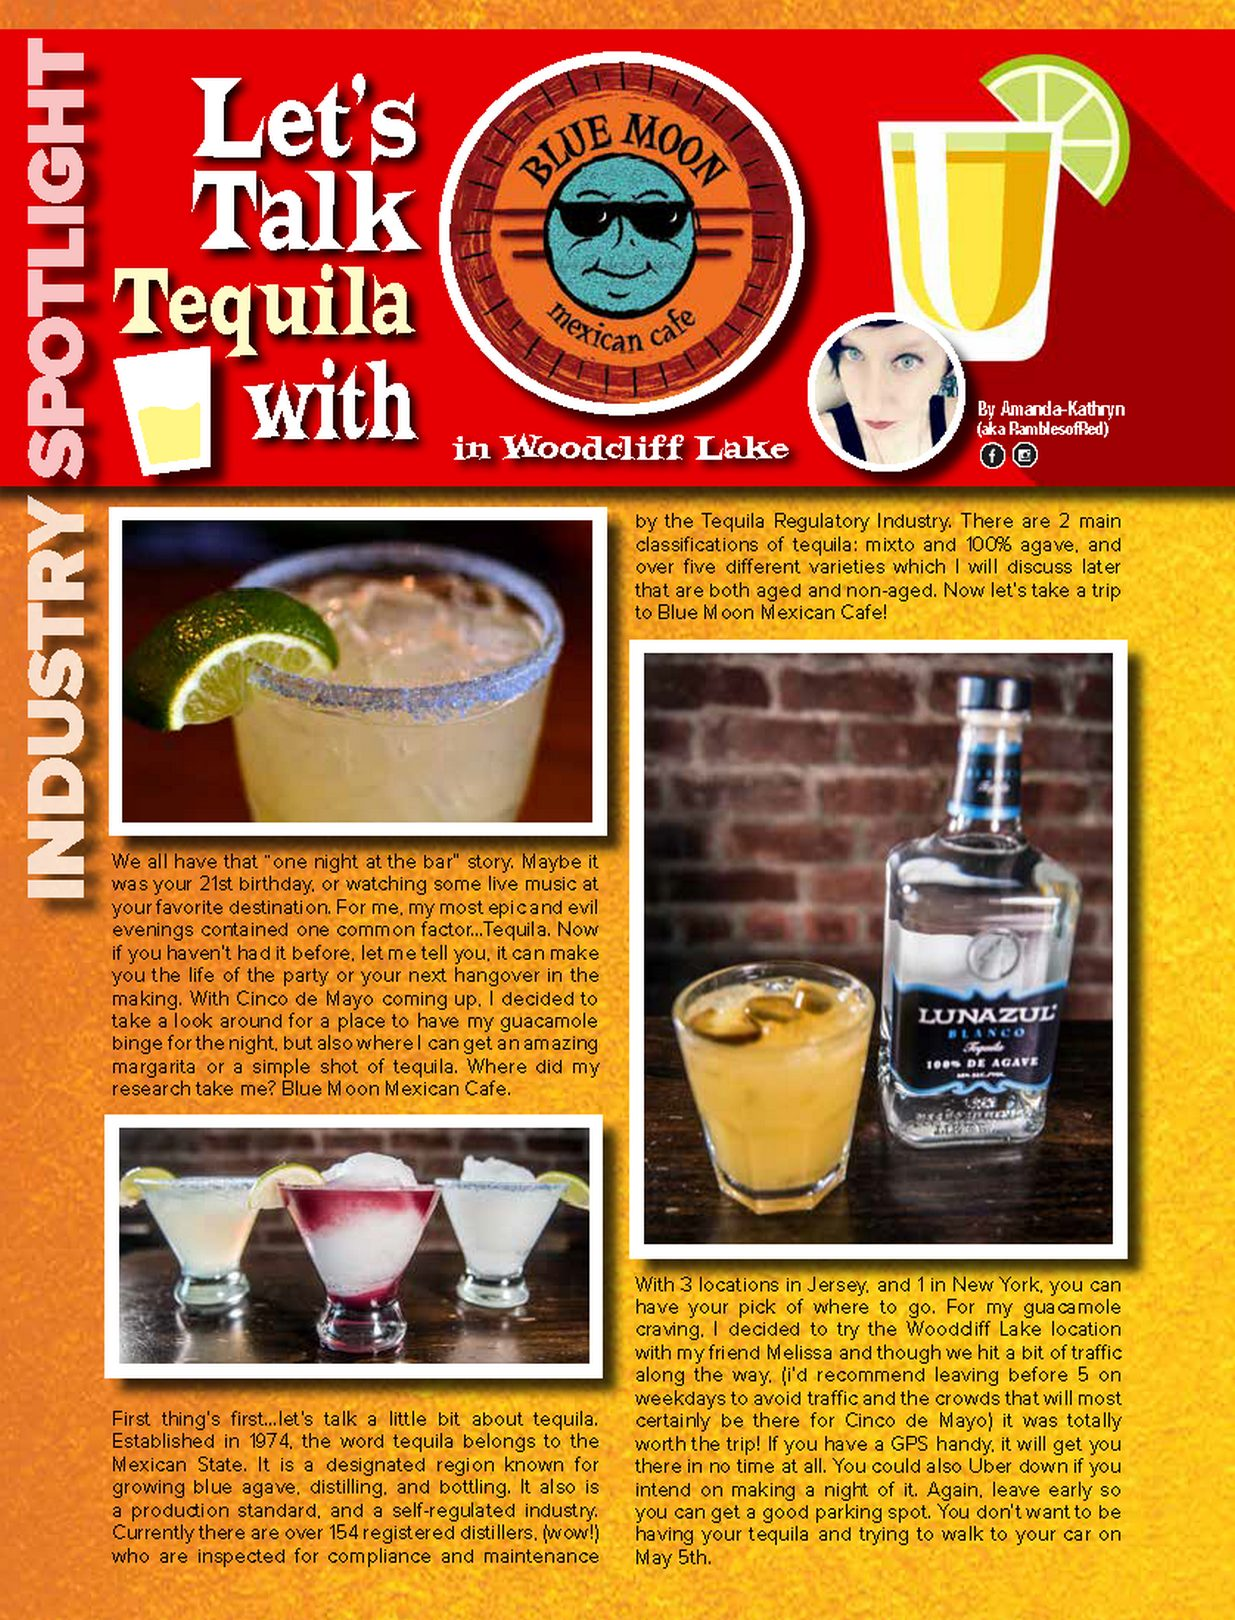 LET'S TALK TEQUILA WITH IN WOODCLIFF LAKE